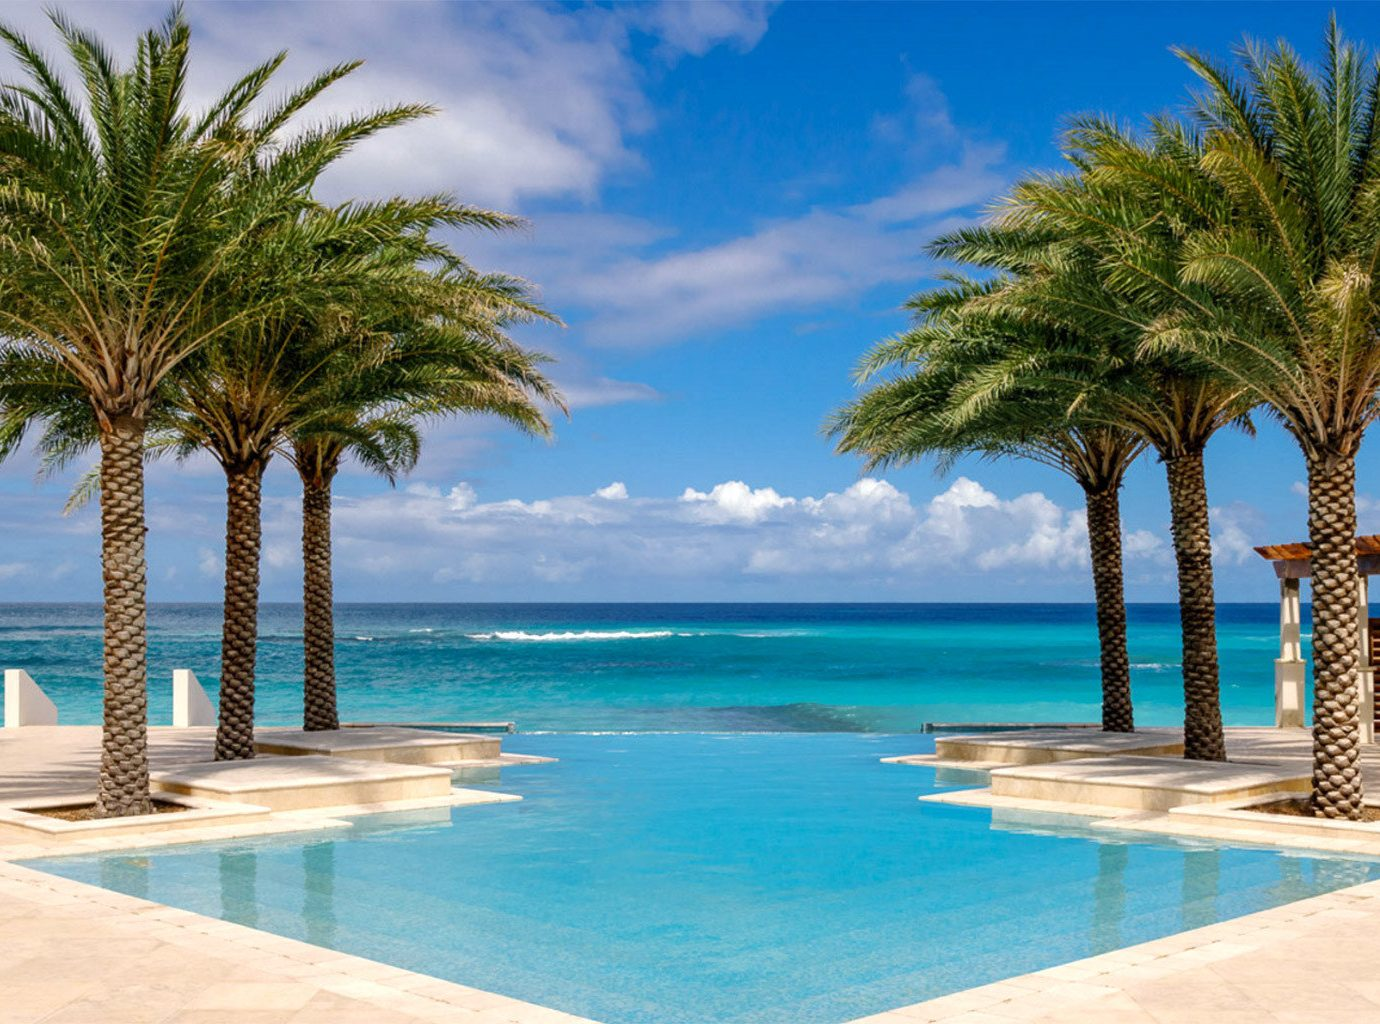 Infinity Pool At The Zemi Beach House Resort And Spa In Anguilla